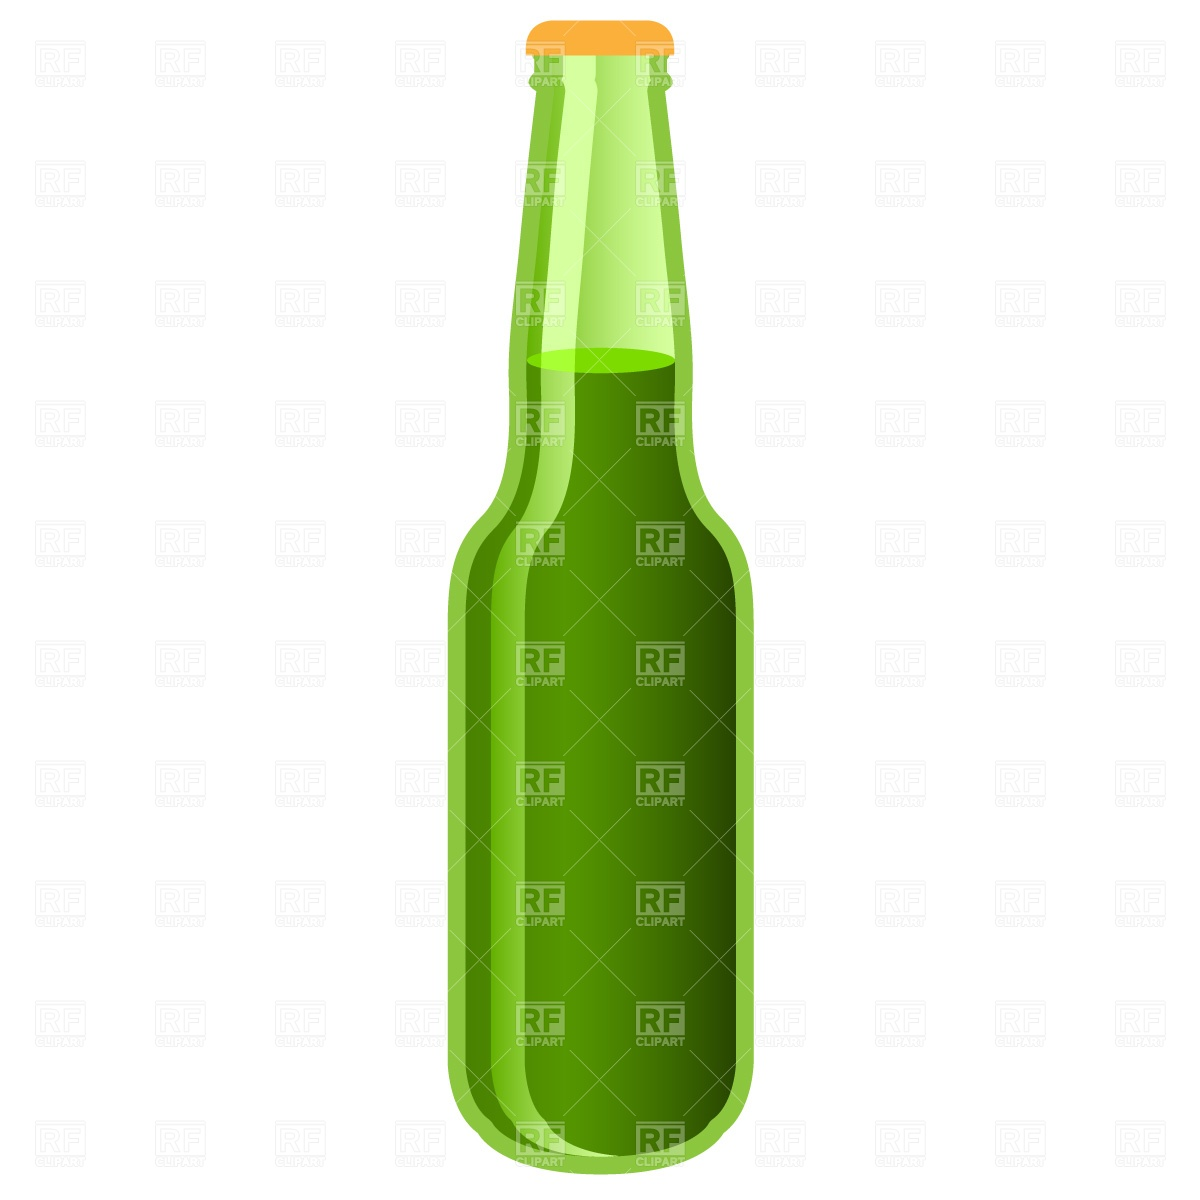 1200x1200 Green Beer Bottle Free Vector Image Vector Artwork Of Food And